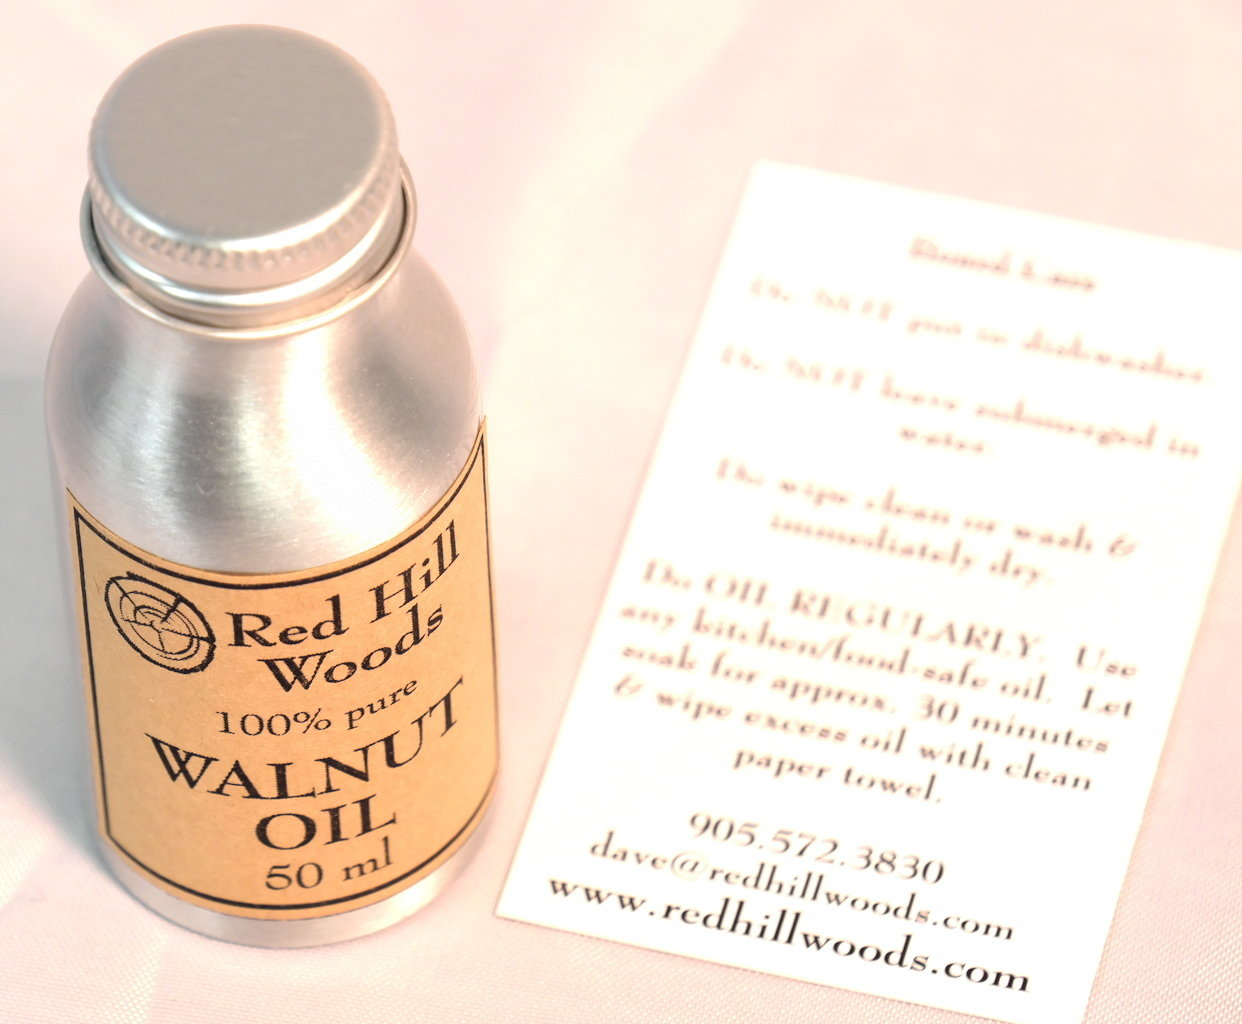 Red Hill Woods Walnut Oil for Boards RHW-WALNUT-OIL